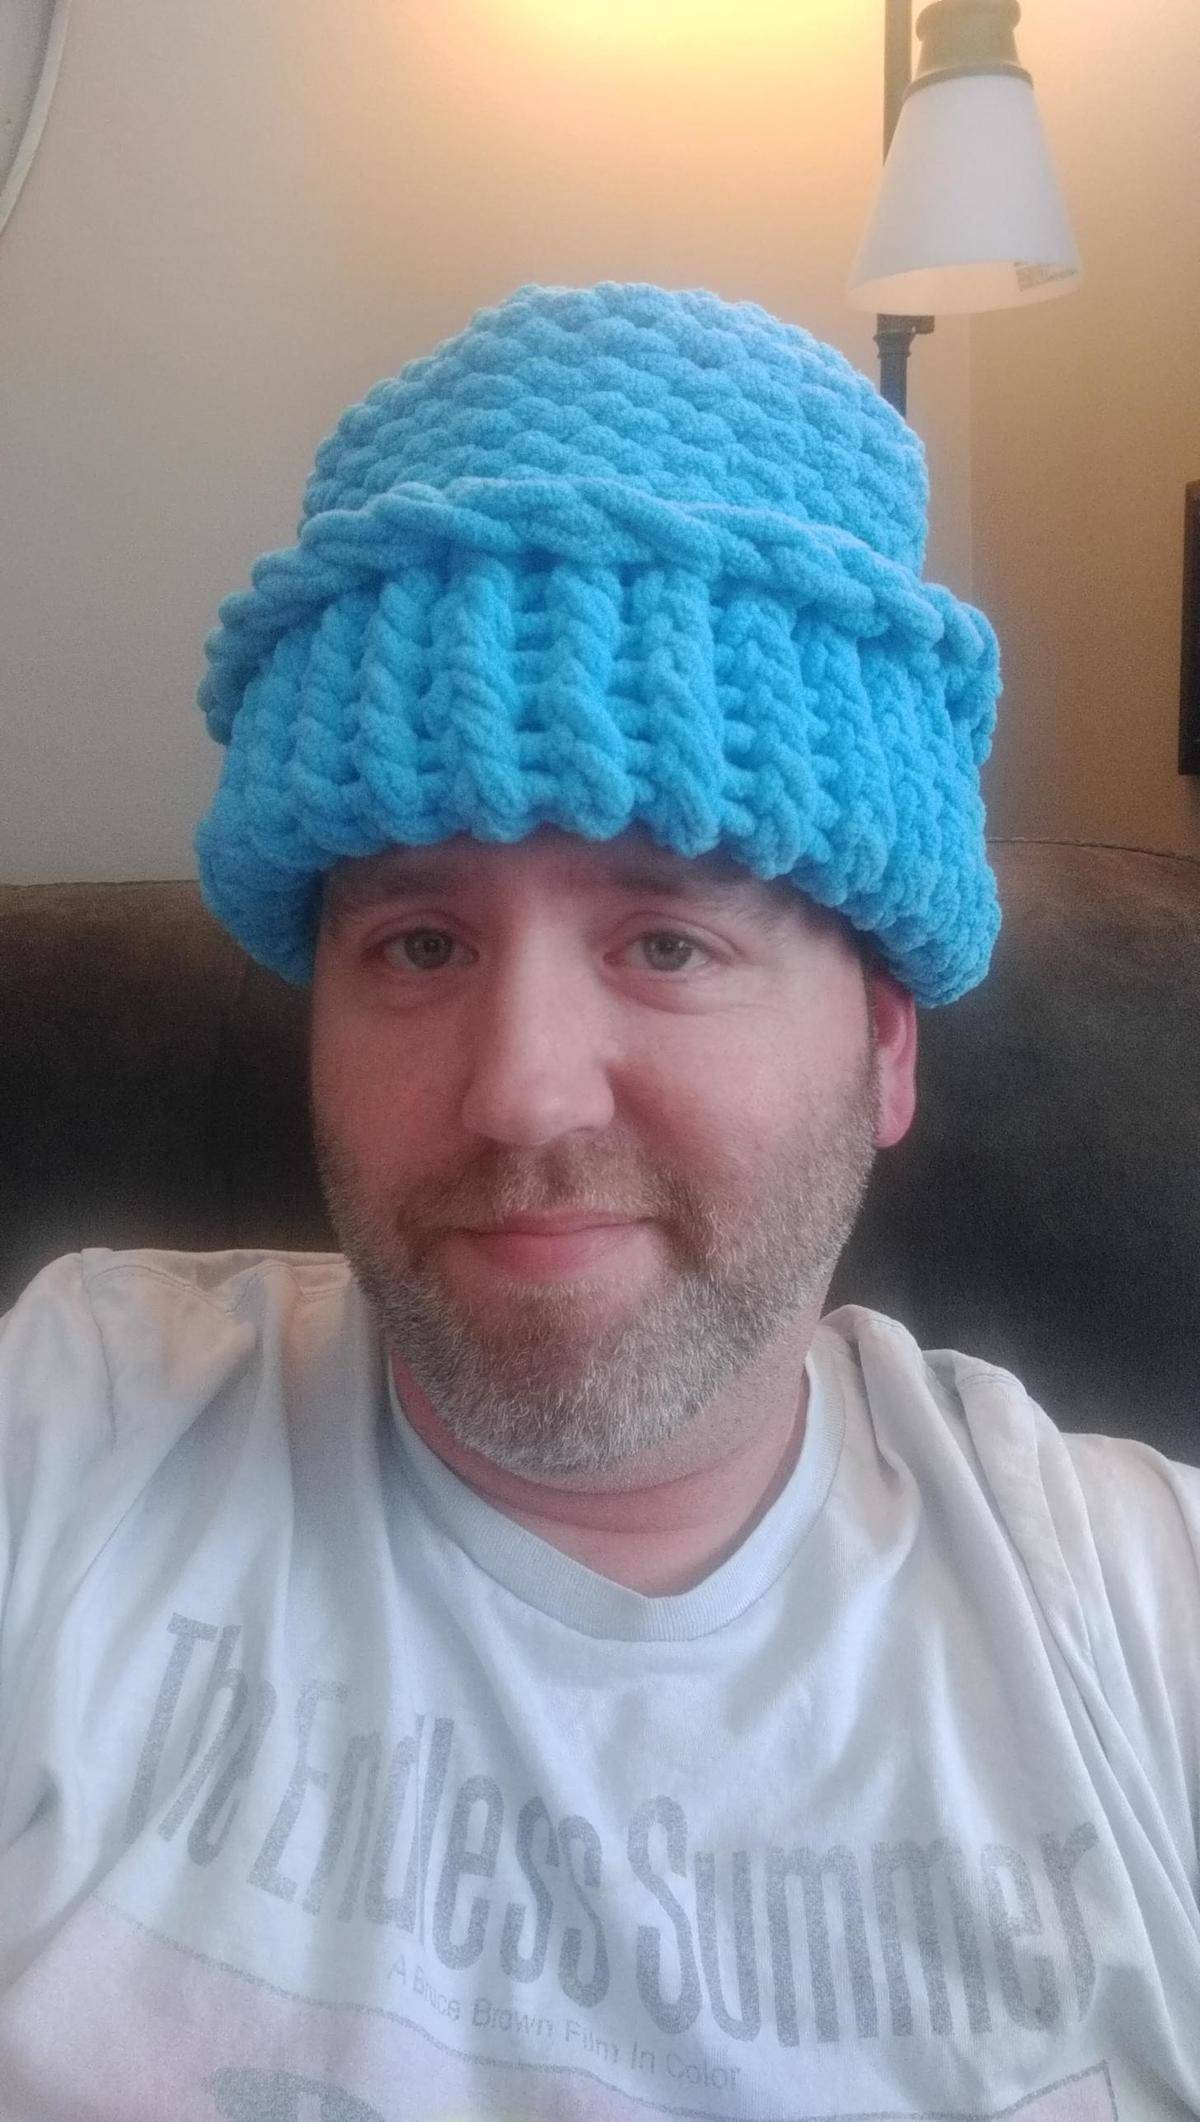 man wearing bright blue knitted hat